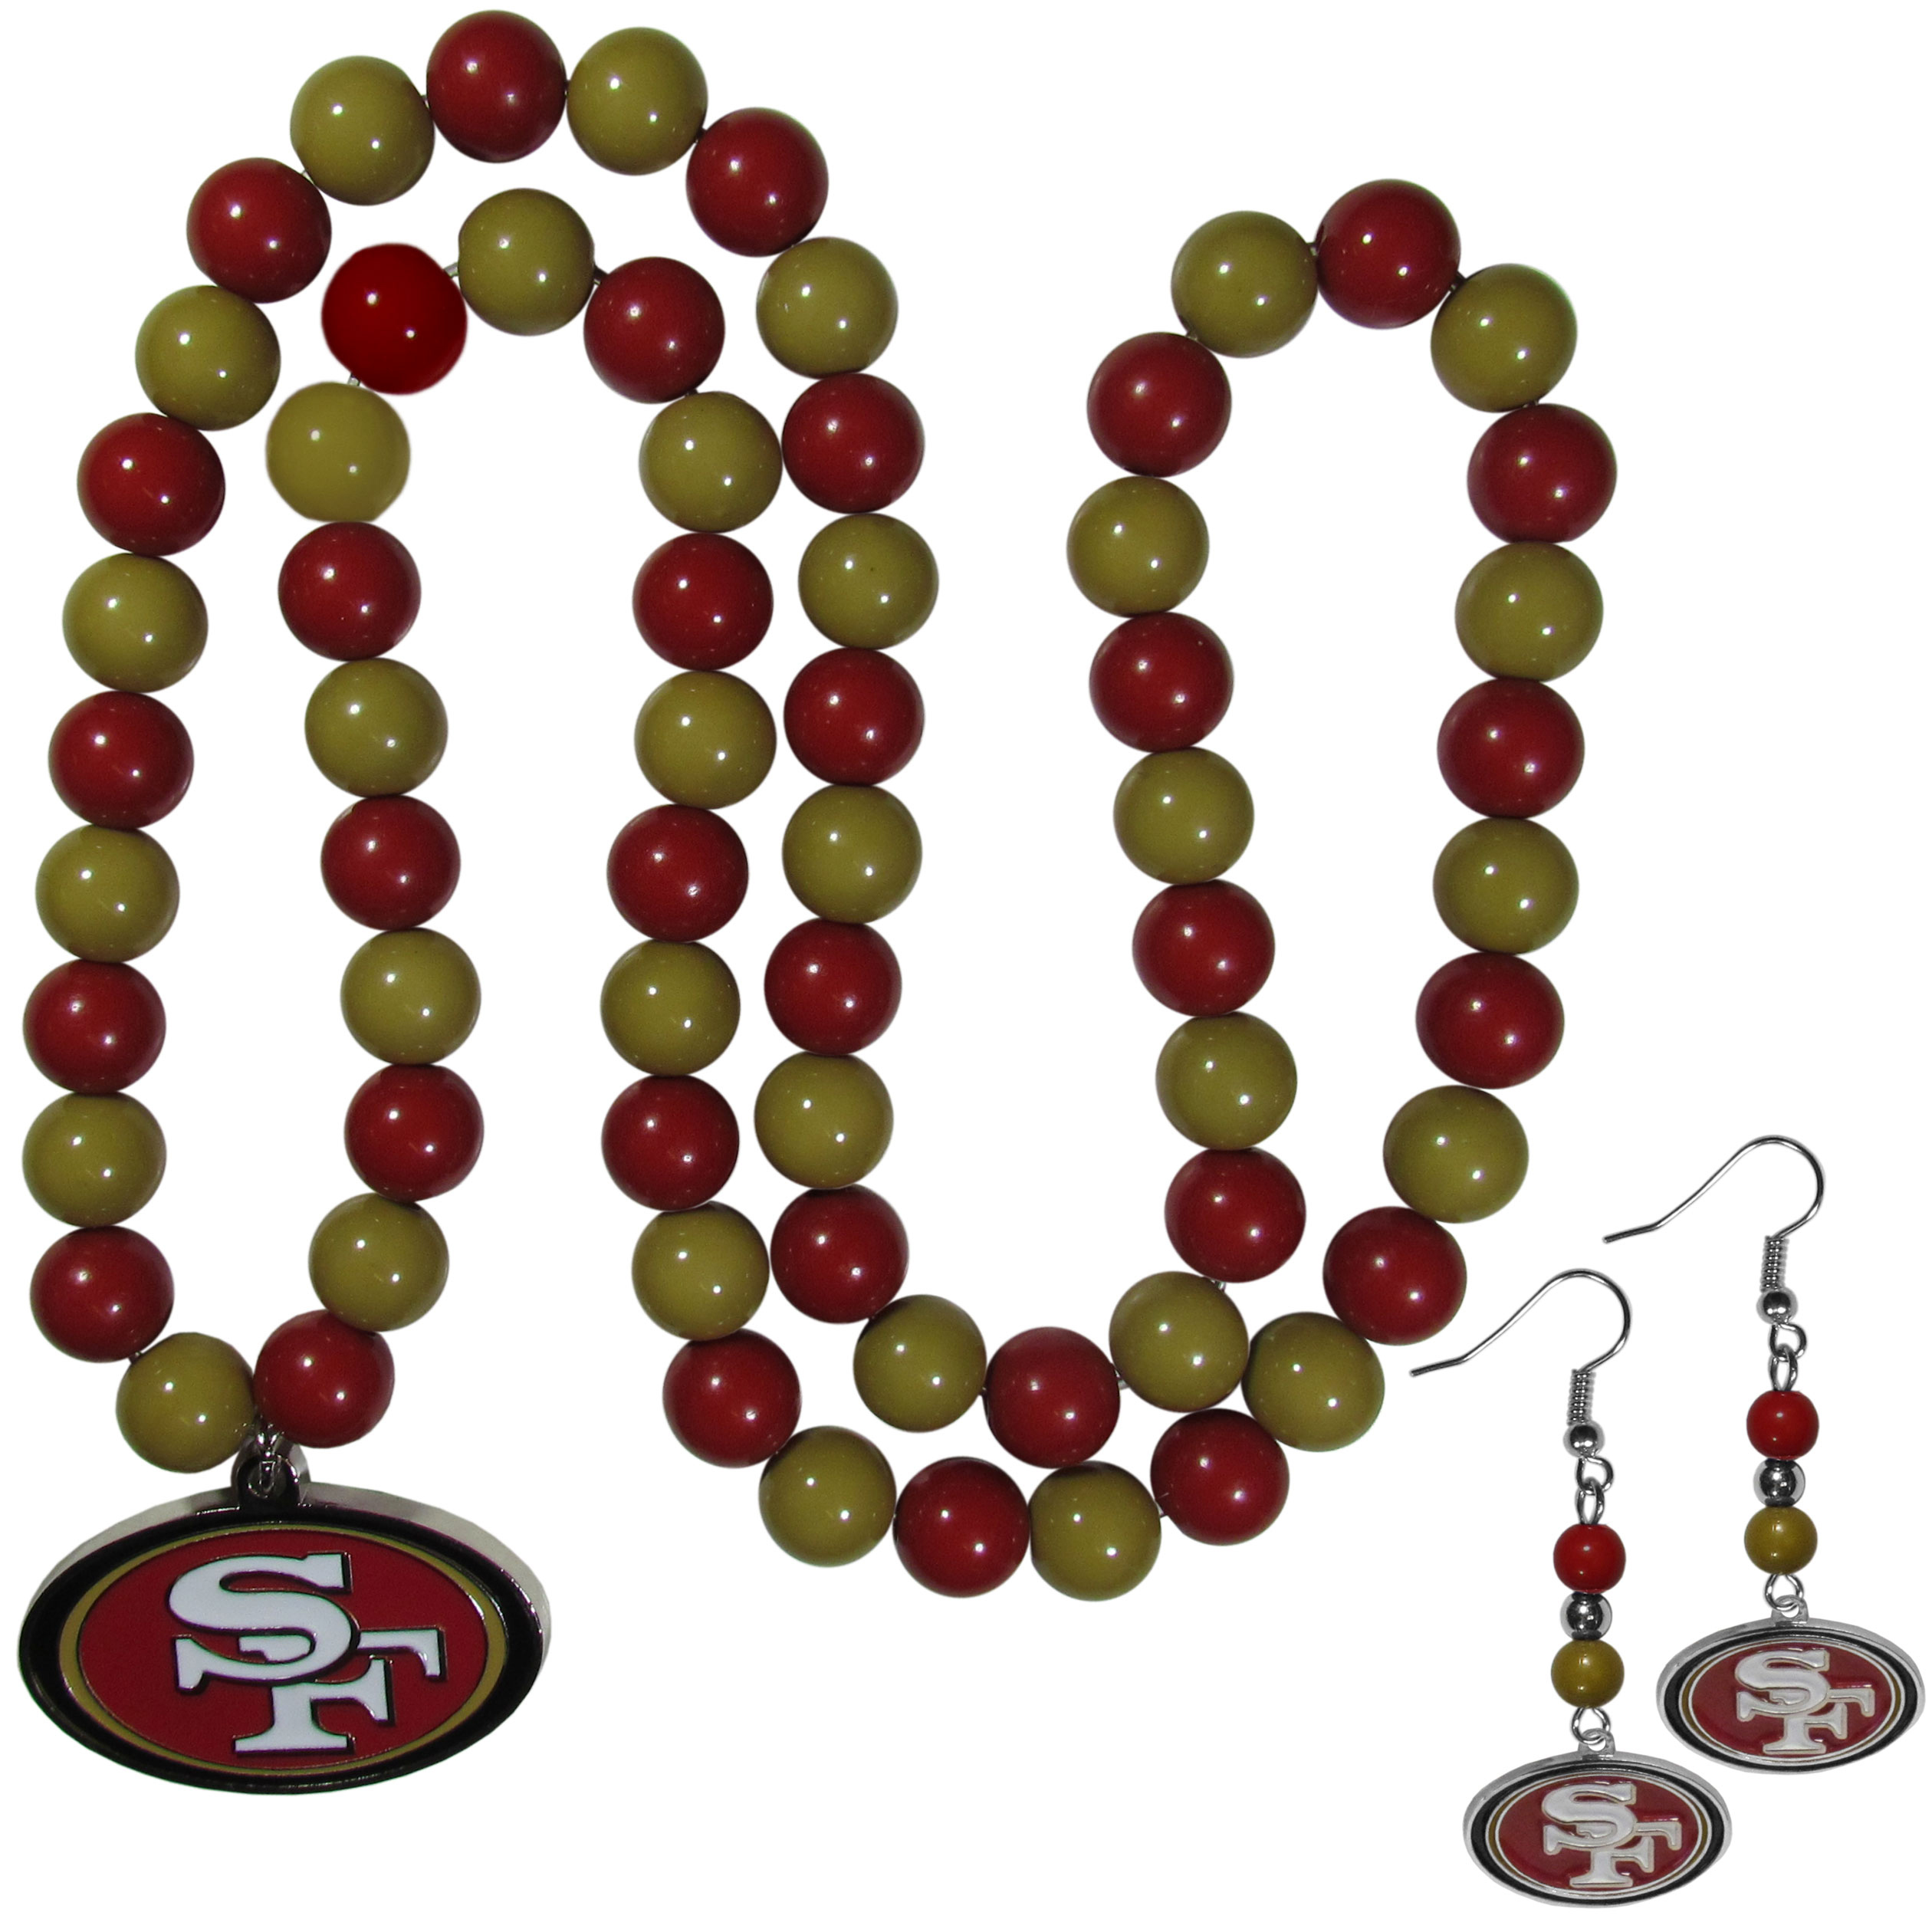 San Francisco 49ers Fan Bead Earrings and Necklace Set - These fun and colorful San Francisco 49ers fan bead jewelry pieces are an eyecatching way to show off your team spirit. The earrings feature hypoallergenic, nickel free fishhook post and 2 team colored beads with a beautifully carved team charm to finish this attractive dangle look. The mathcing bracelet has alternating team colored beads on a stretch cord and features a matching team charm.